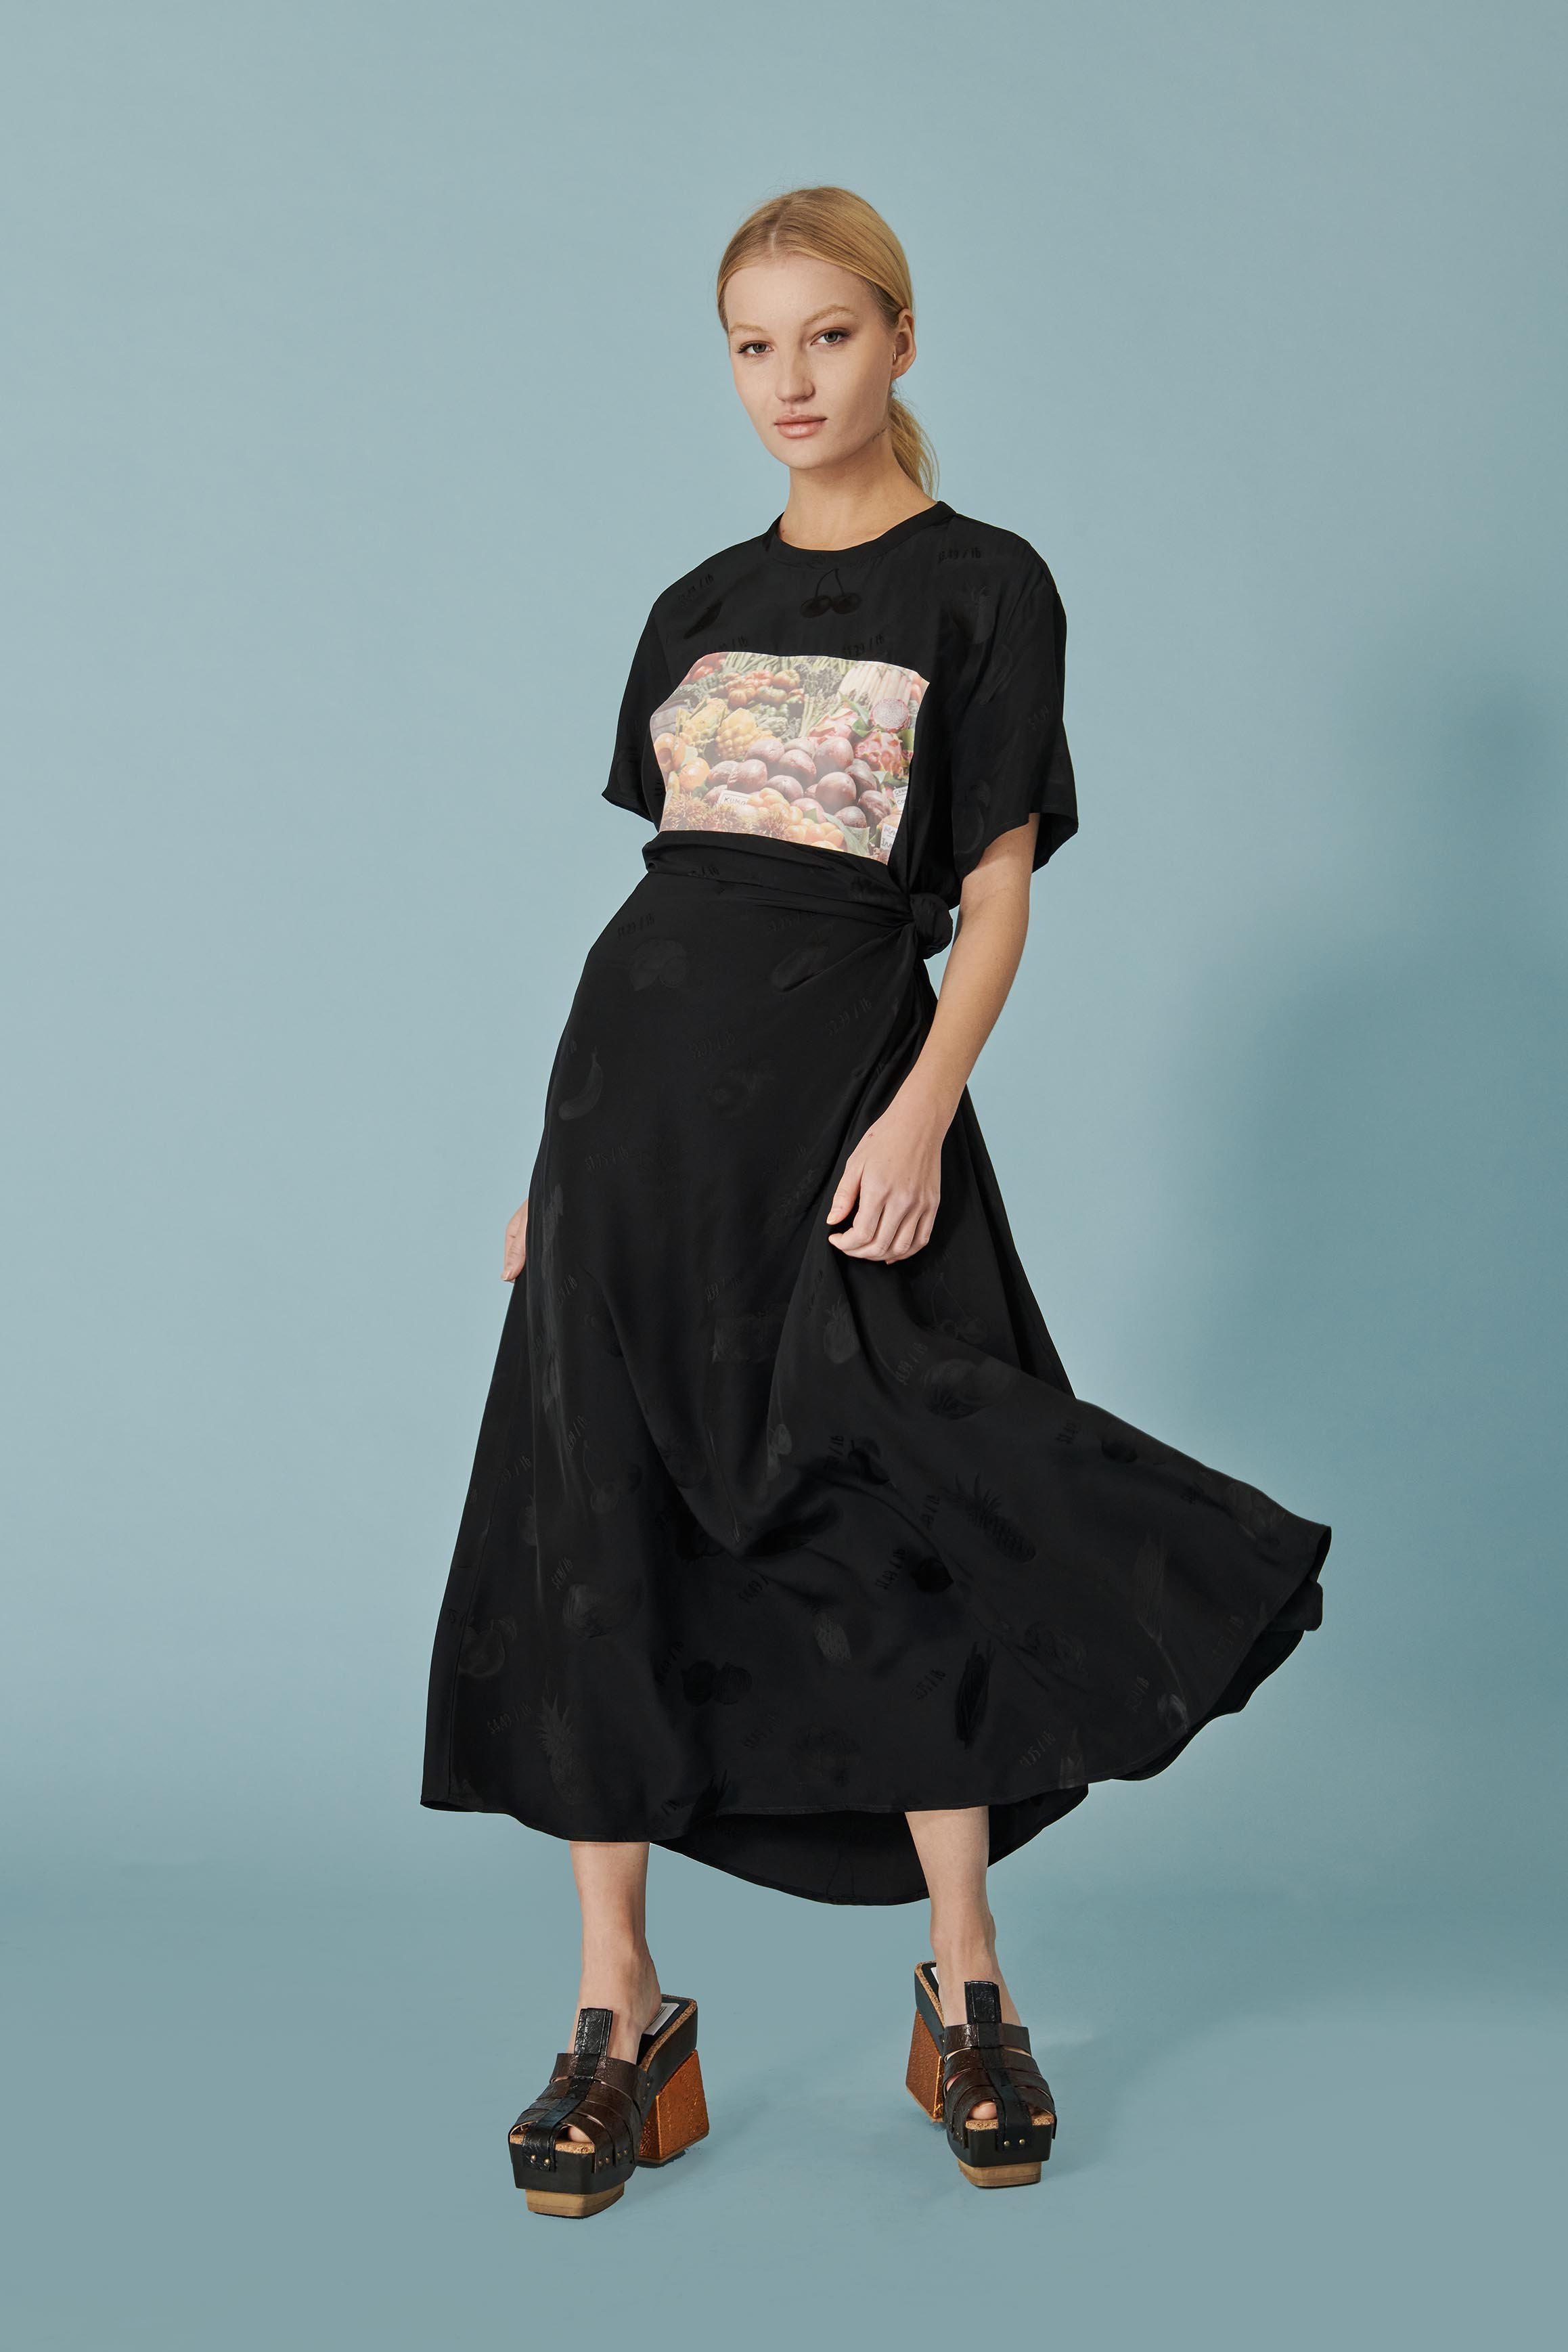 Produce Print Knotted T Dress